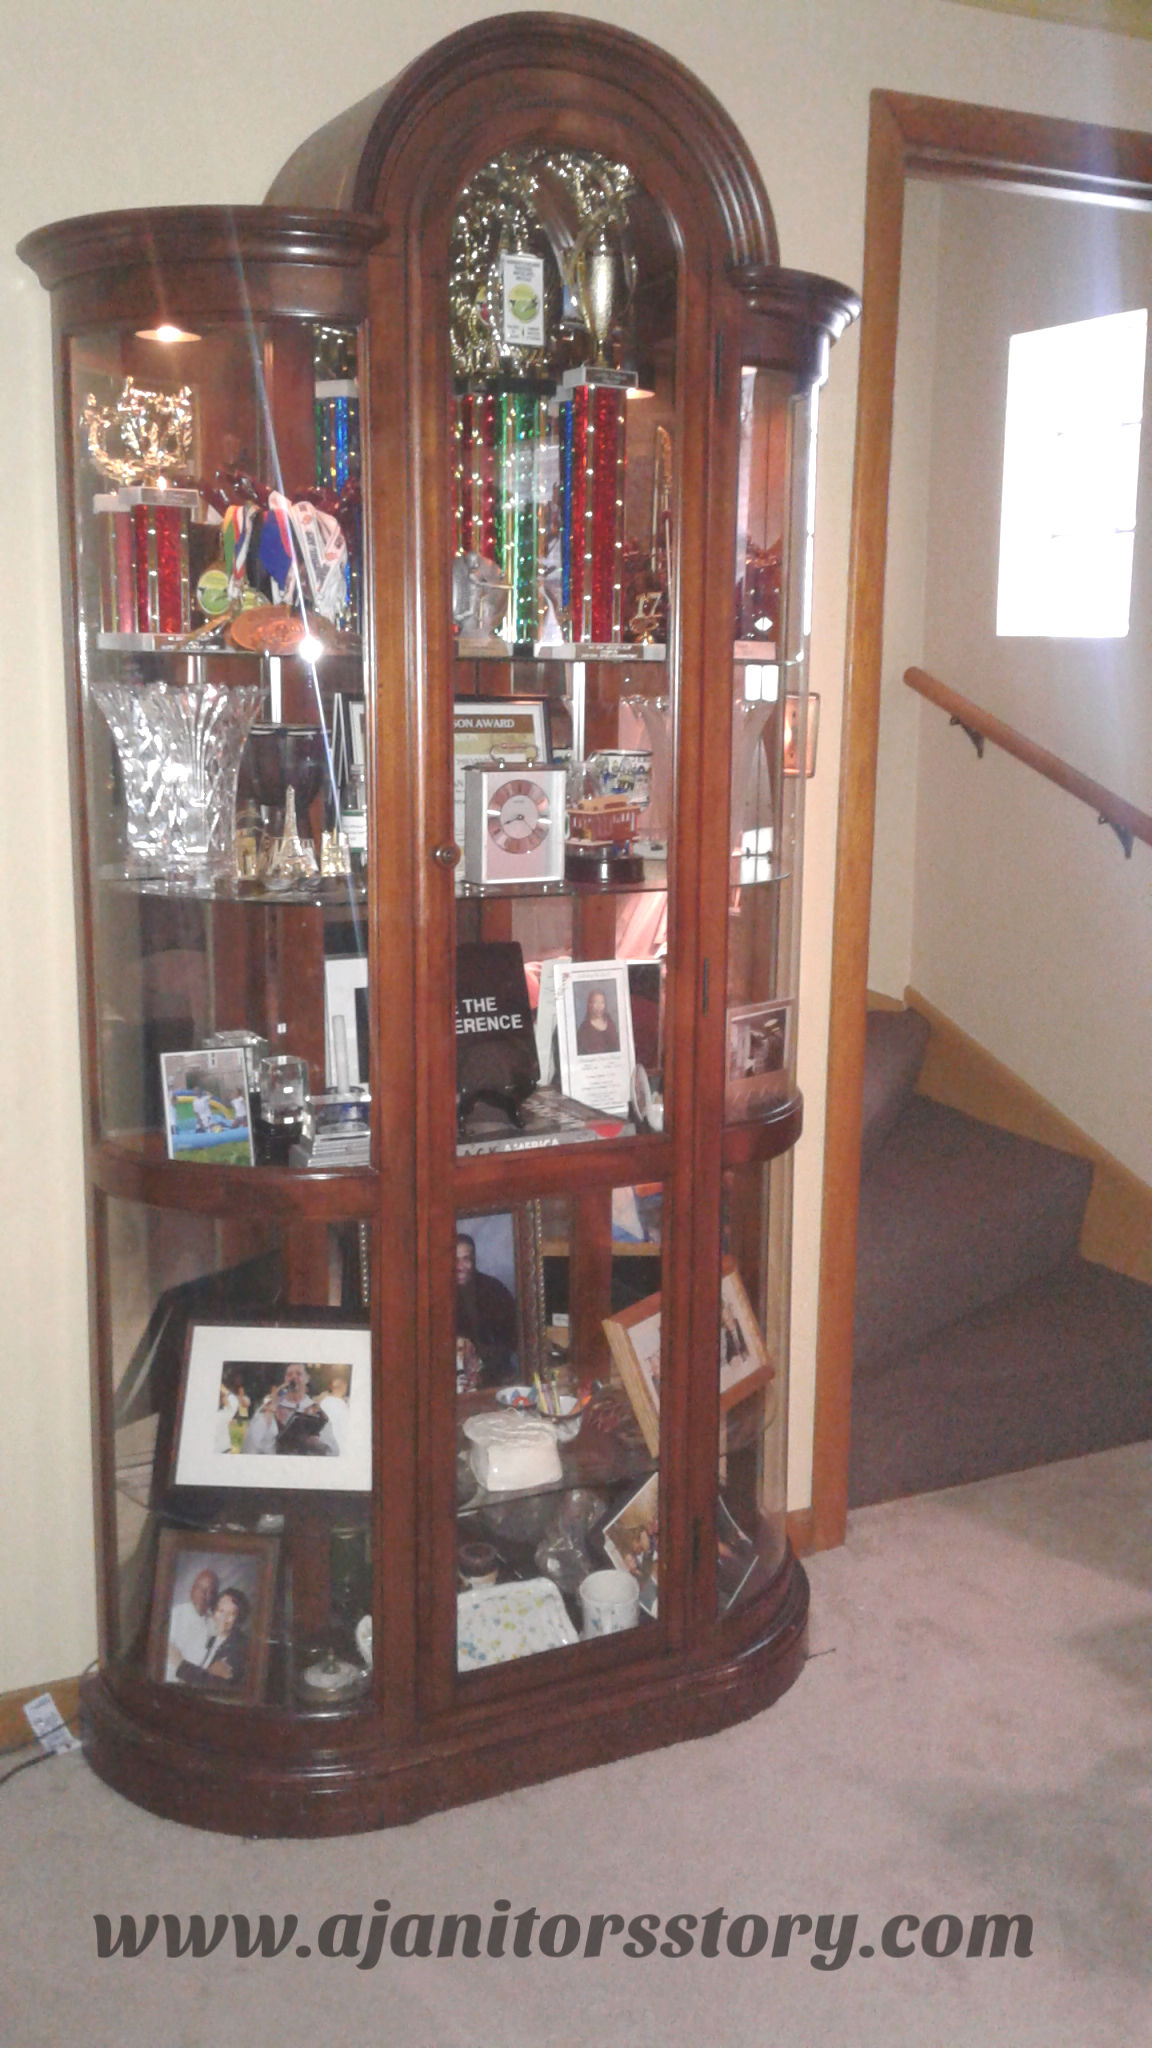 How to clean a glass curio and shelves.